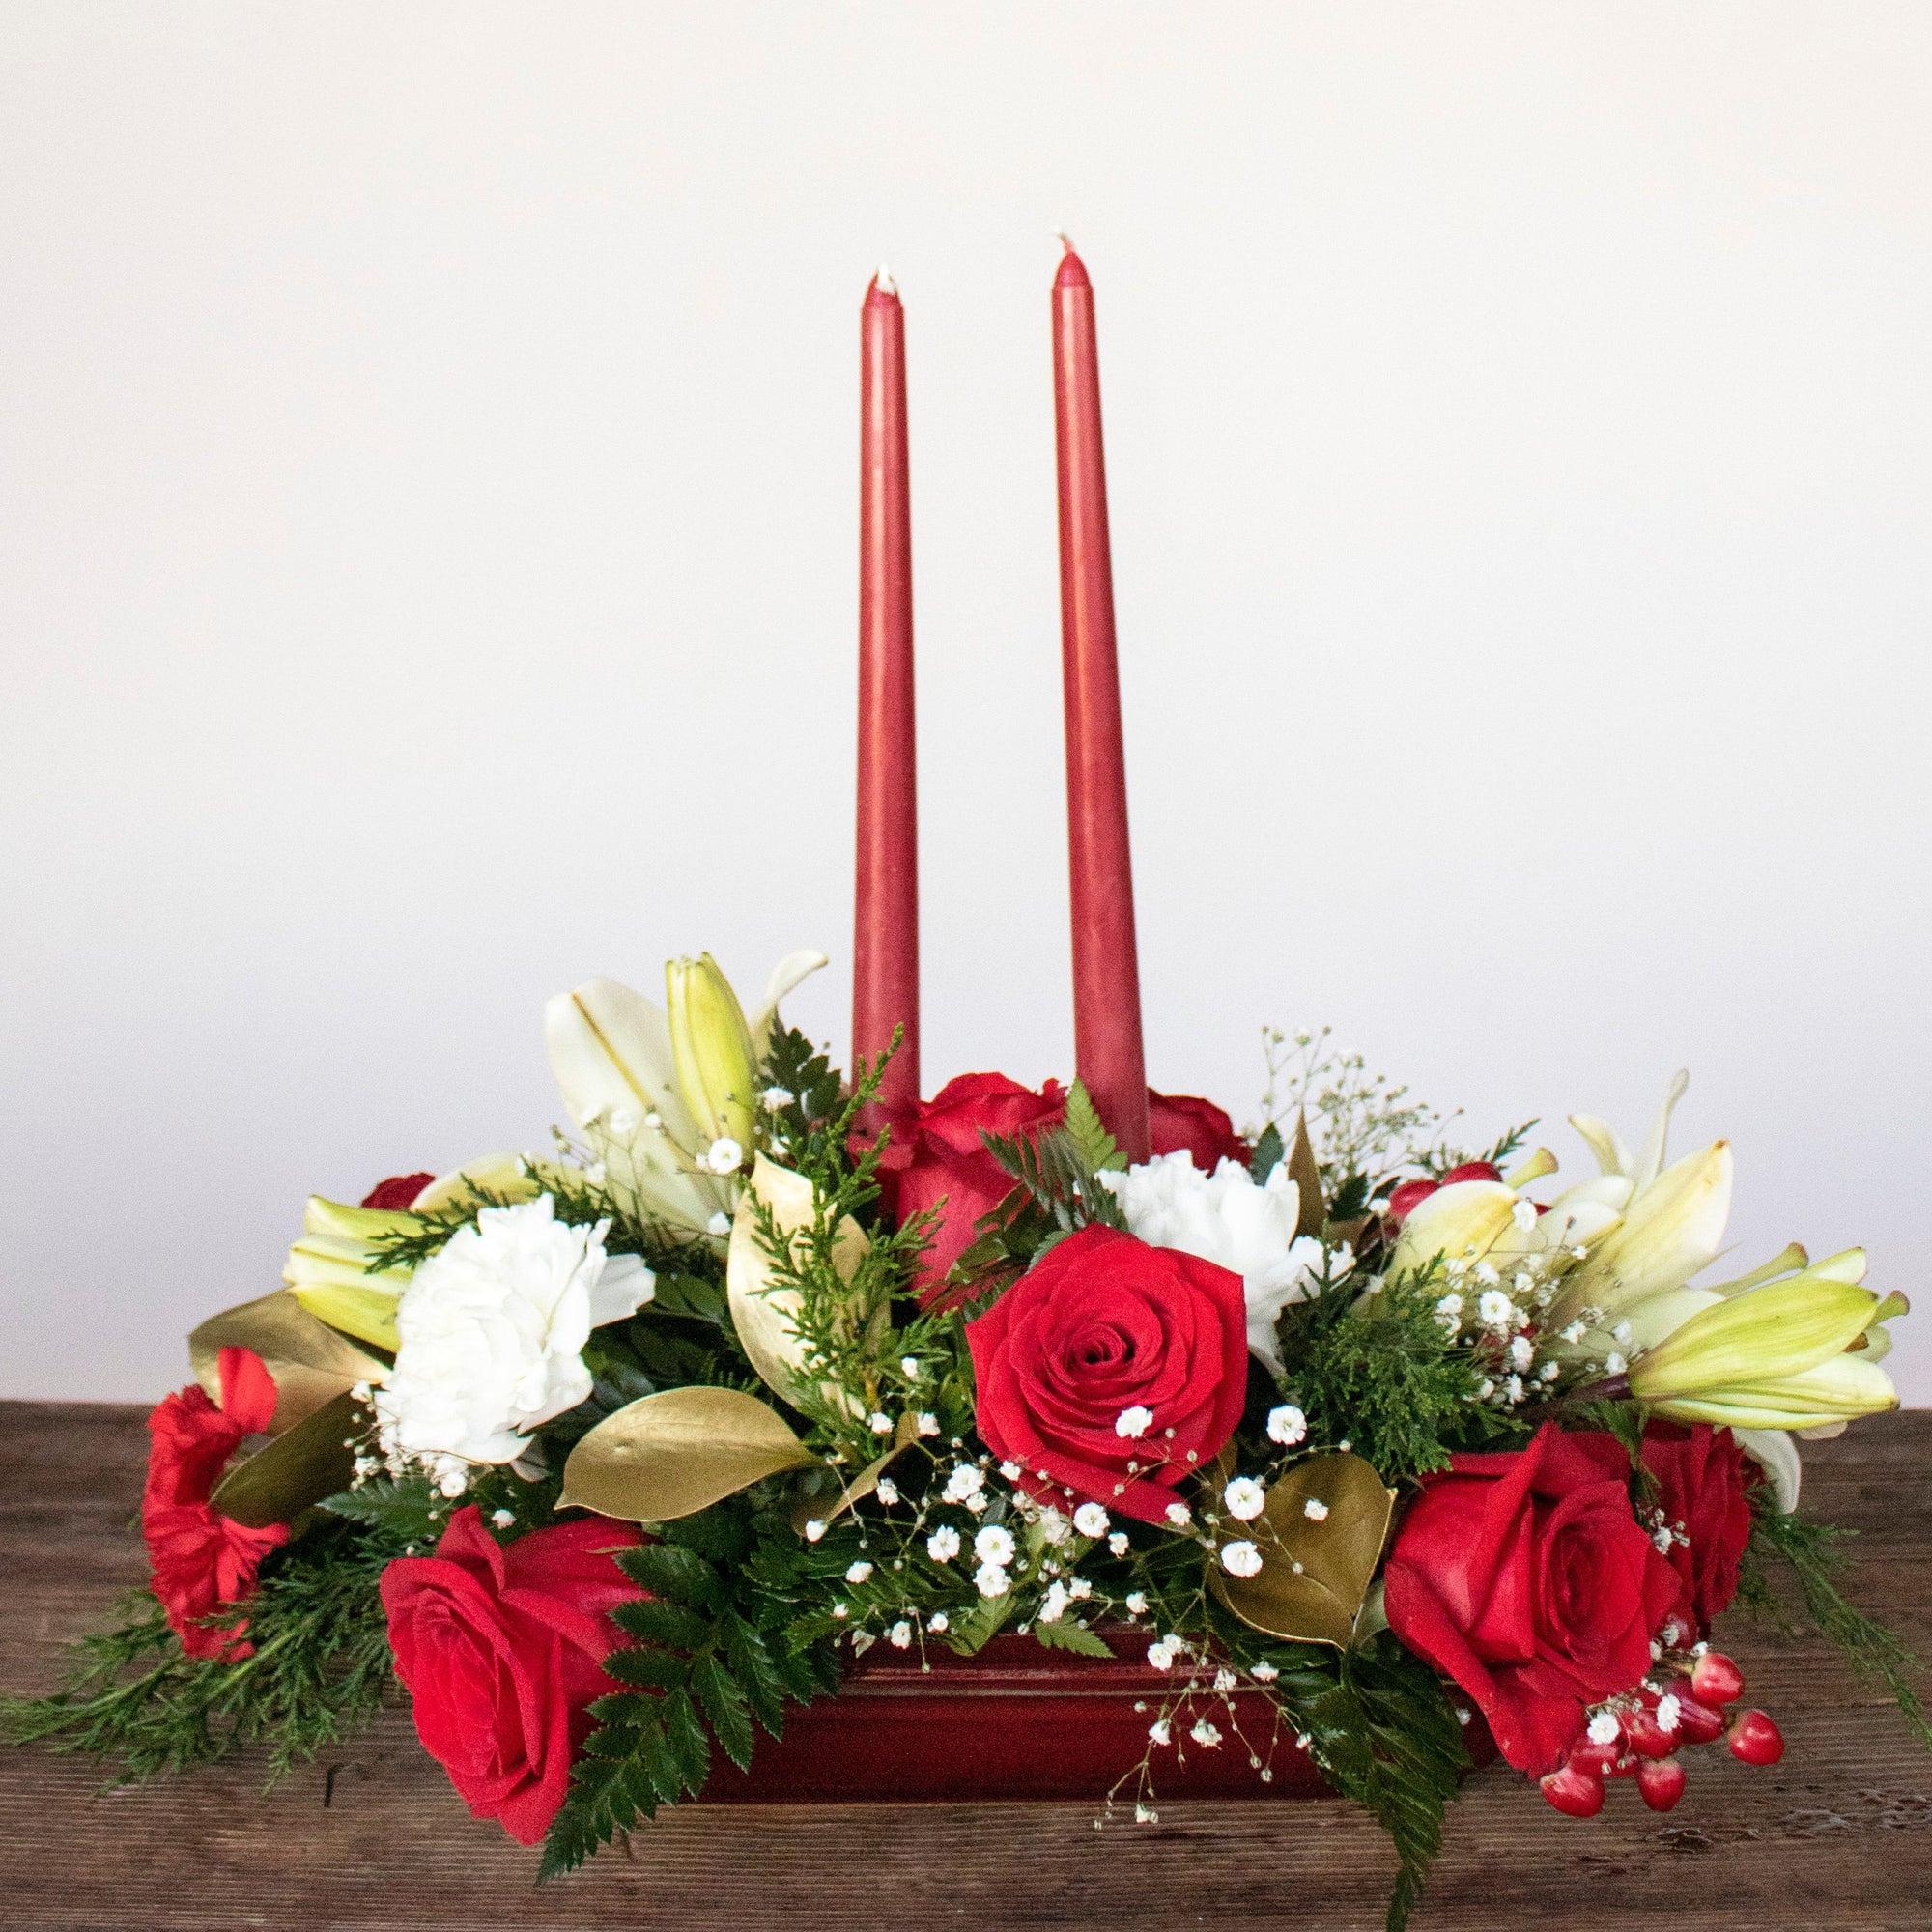 Festive Holiday Flowers Virtual Design Class December 17th 5PM EST